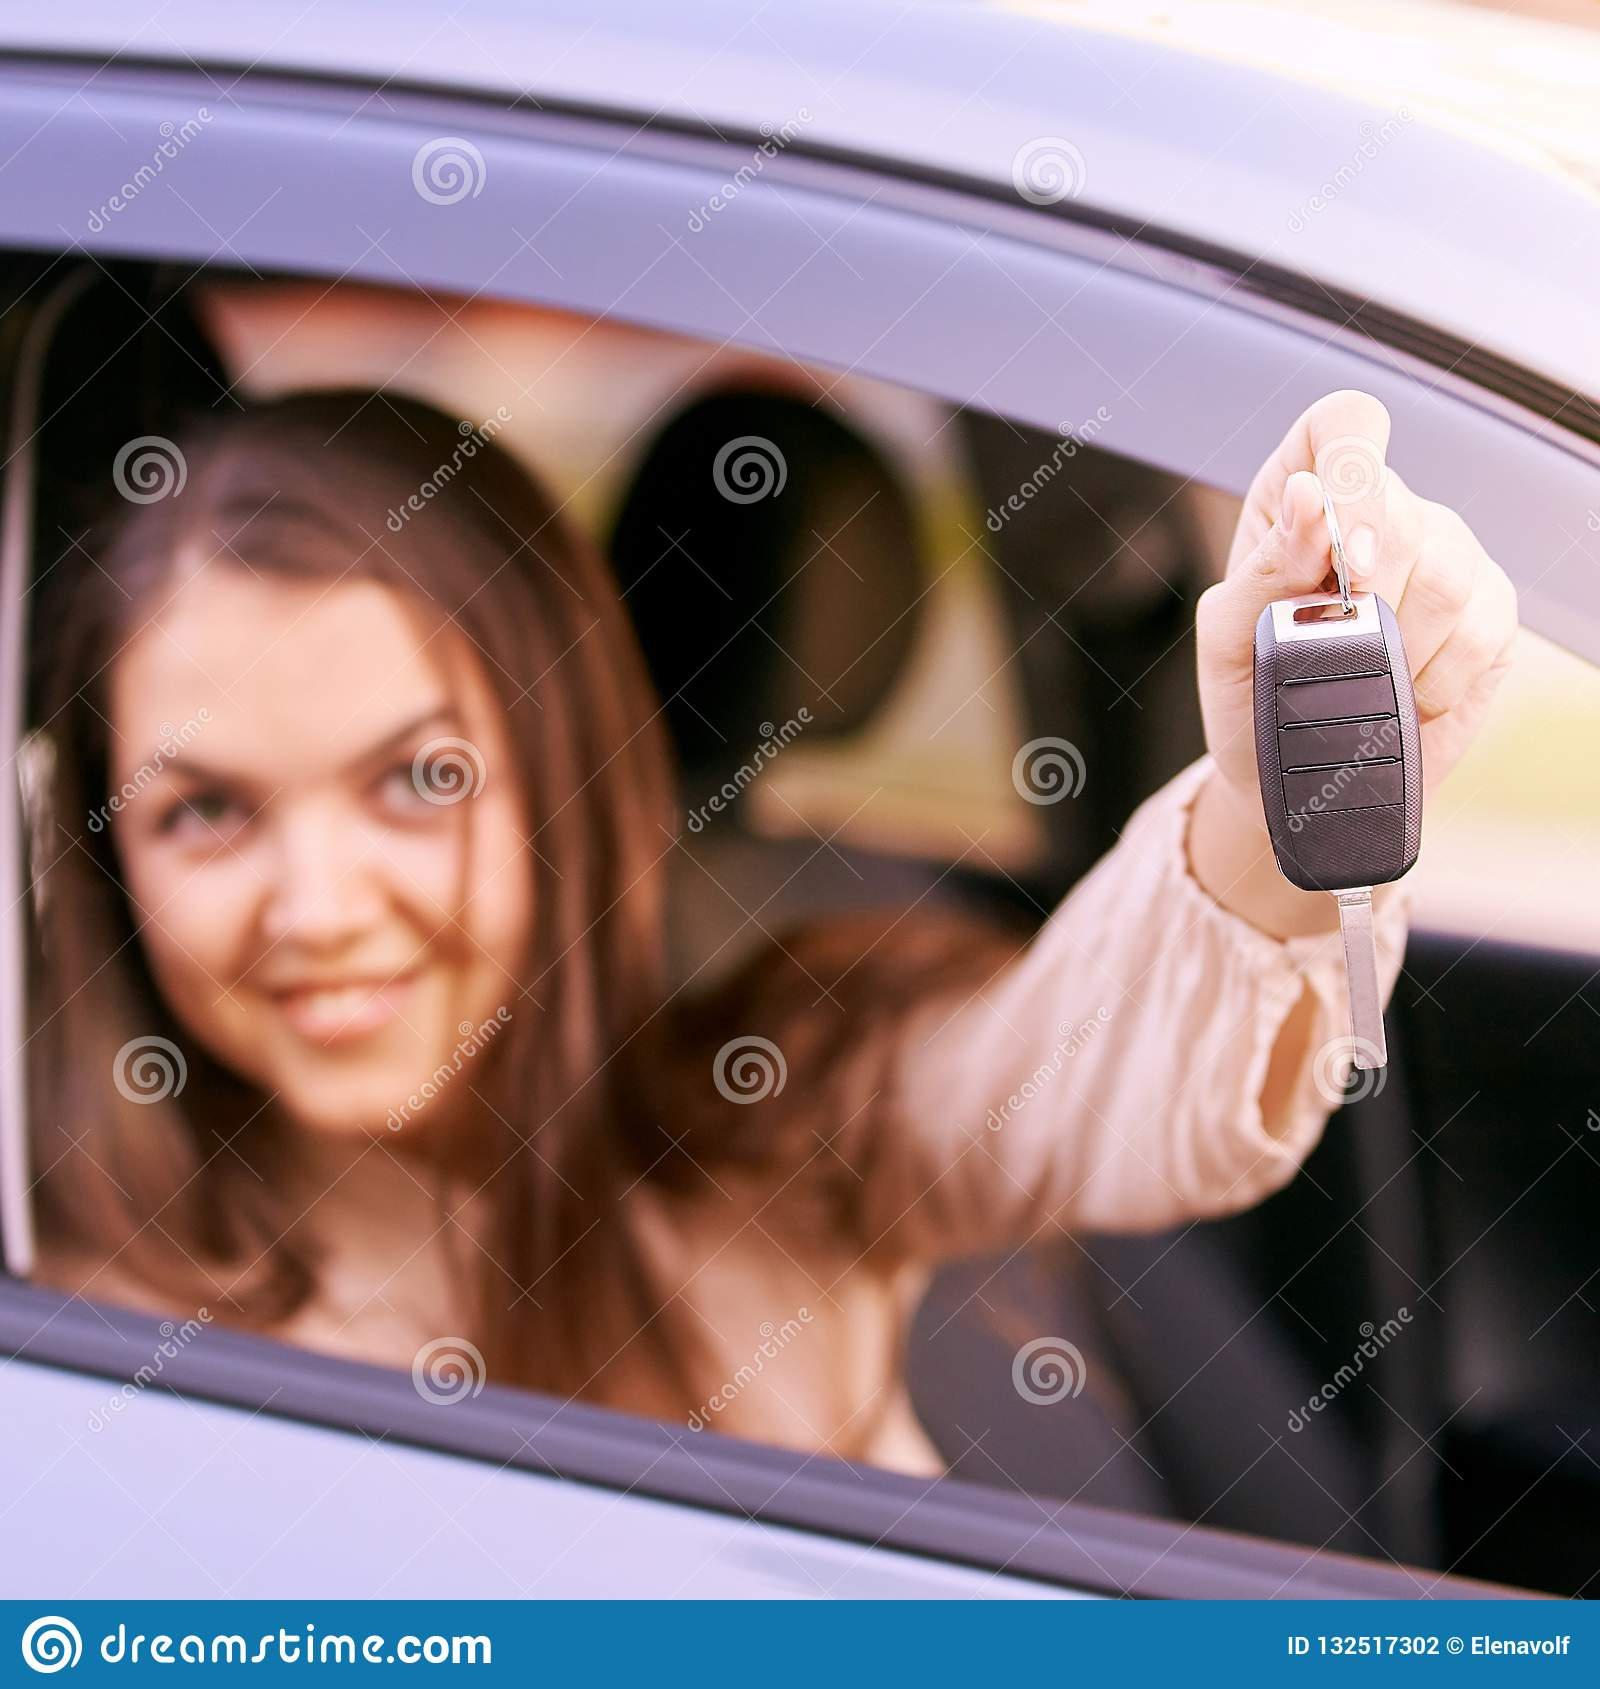 Car buy key. New rent automobile owner